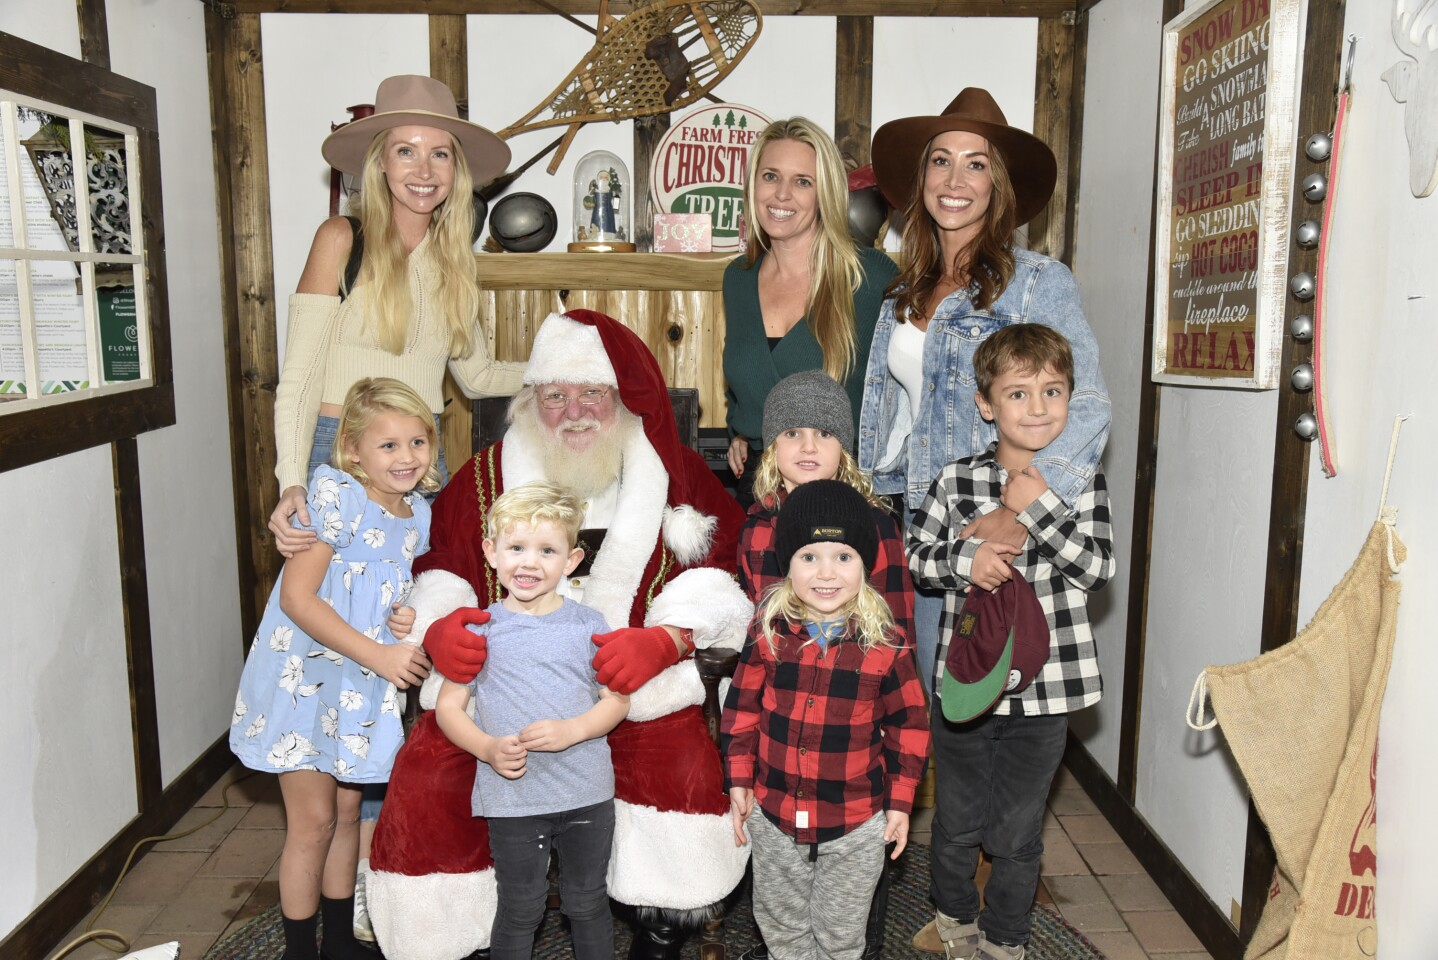 Candace Fahlstrom, Allison Lantz, Rose Starck, Santa with Charlotte, Ford, Archer, Thompson, and Dylan